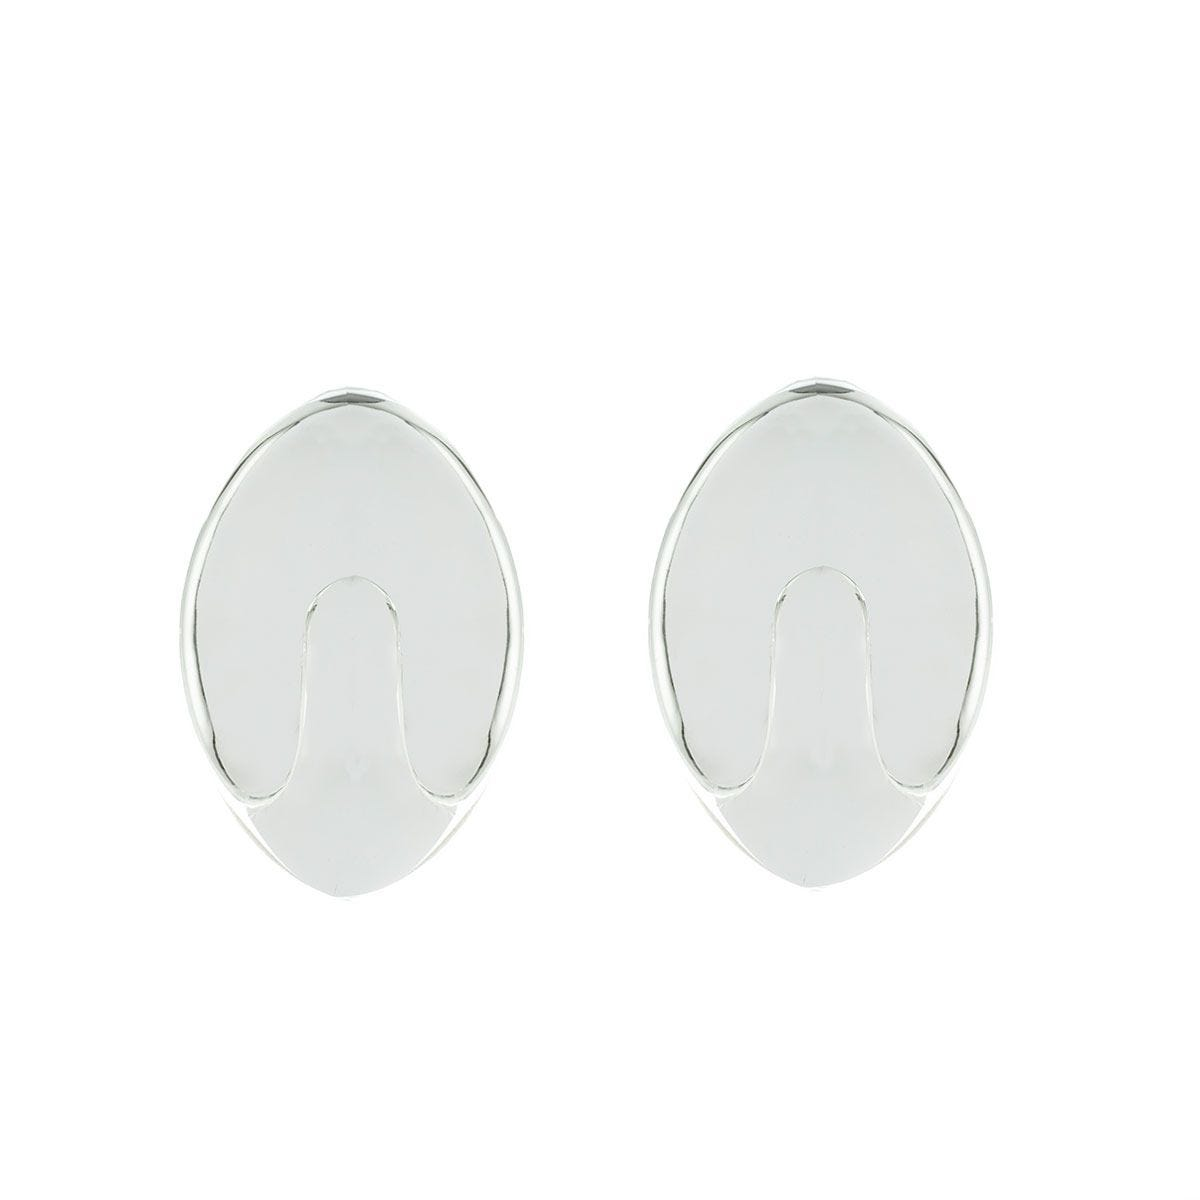 Select Hardware Self-Adhesive Large Oval Hooks Chrome - Pack of 2